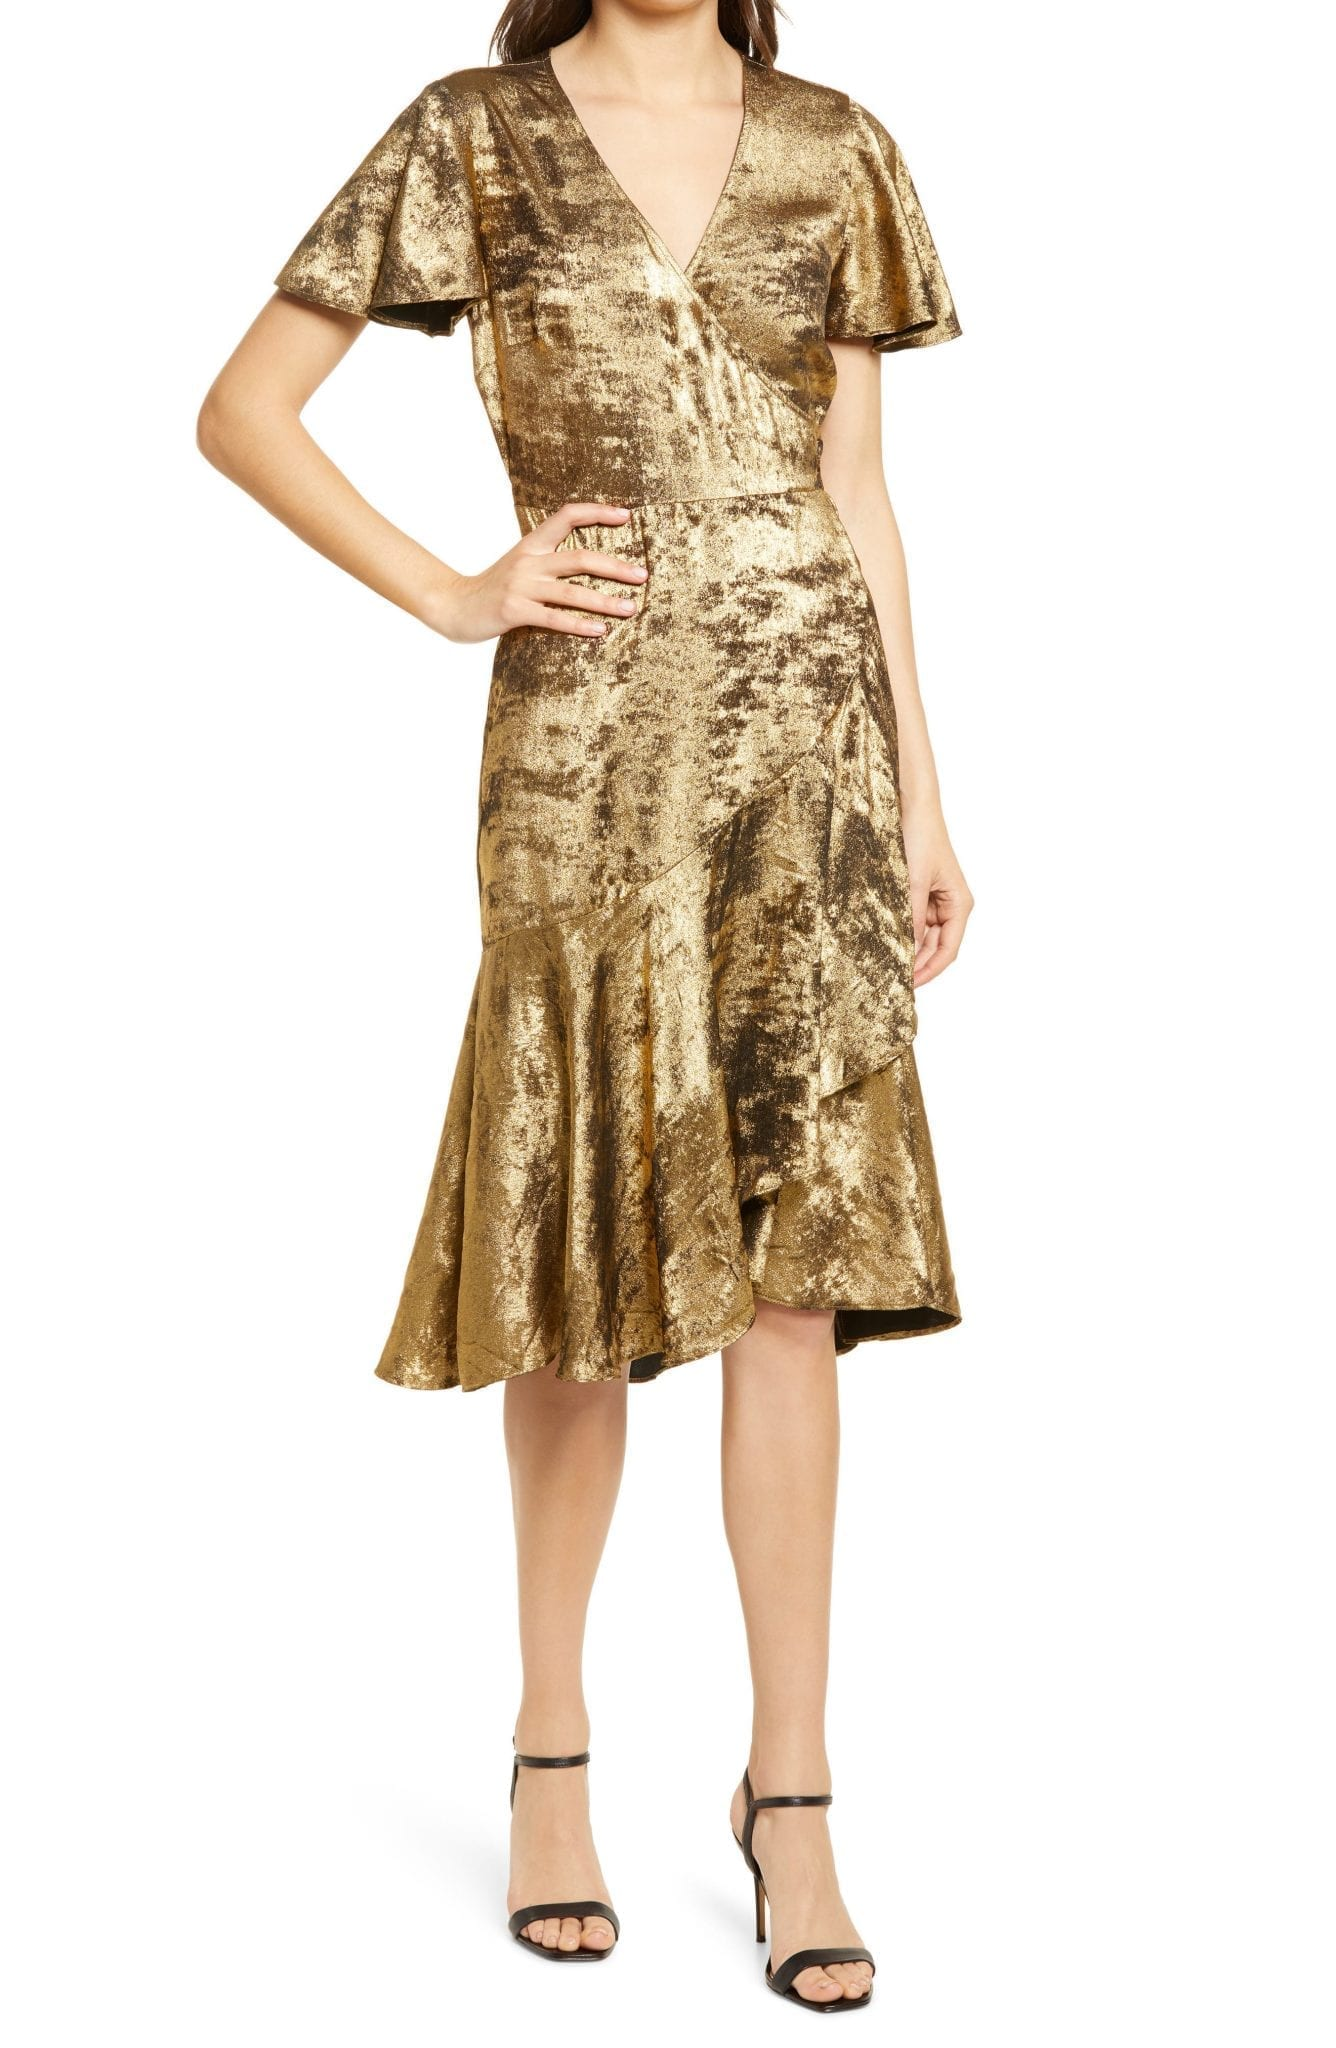 CHELSEA28 Metallic Crushed Velvet Ruffle Dress